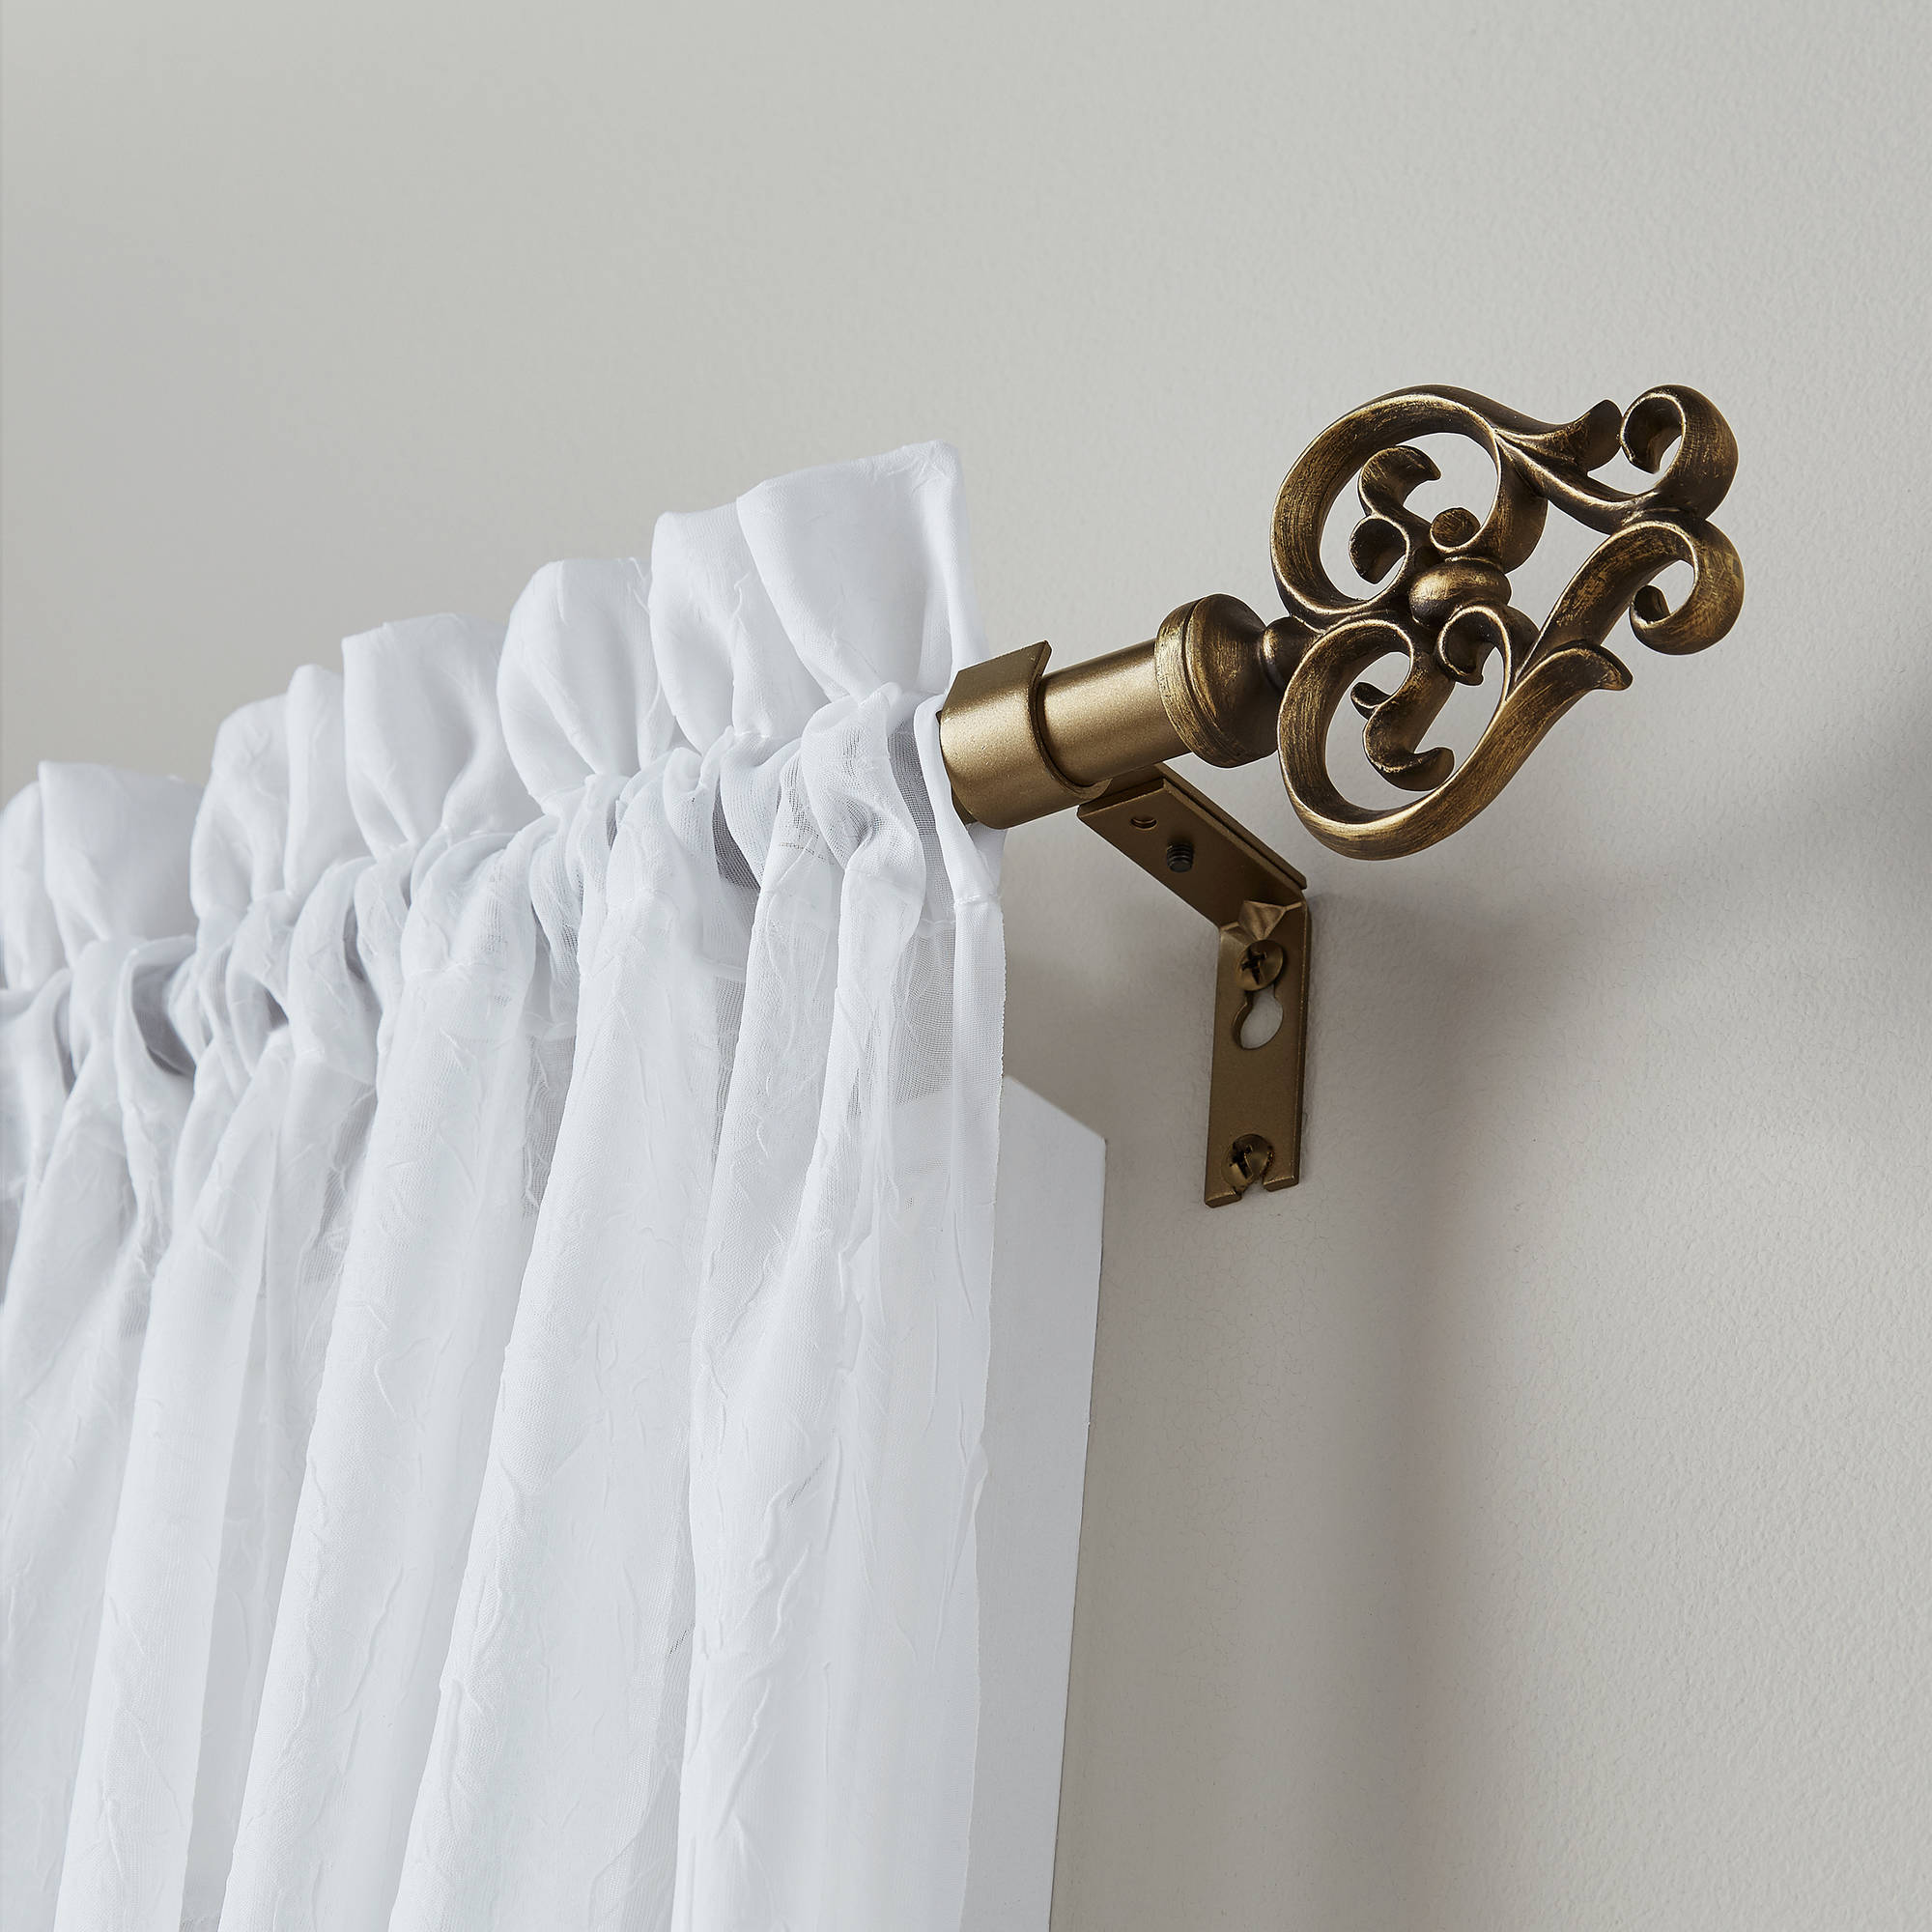 Better Homes and Gardens Savannah Scroll Curtain Rod